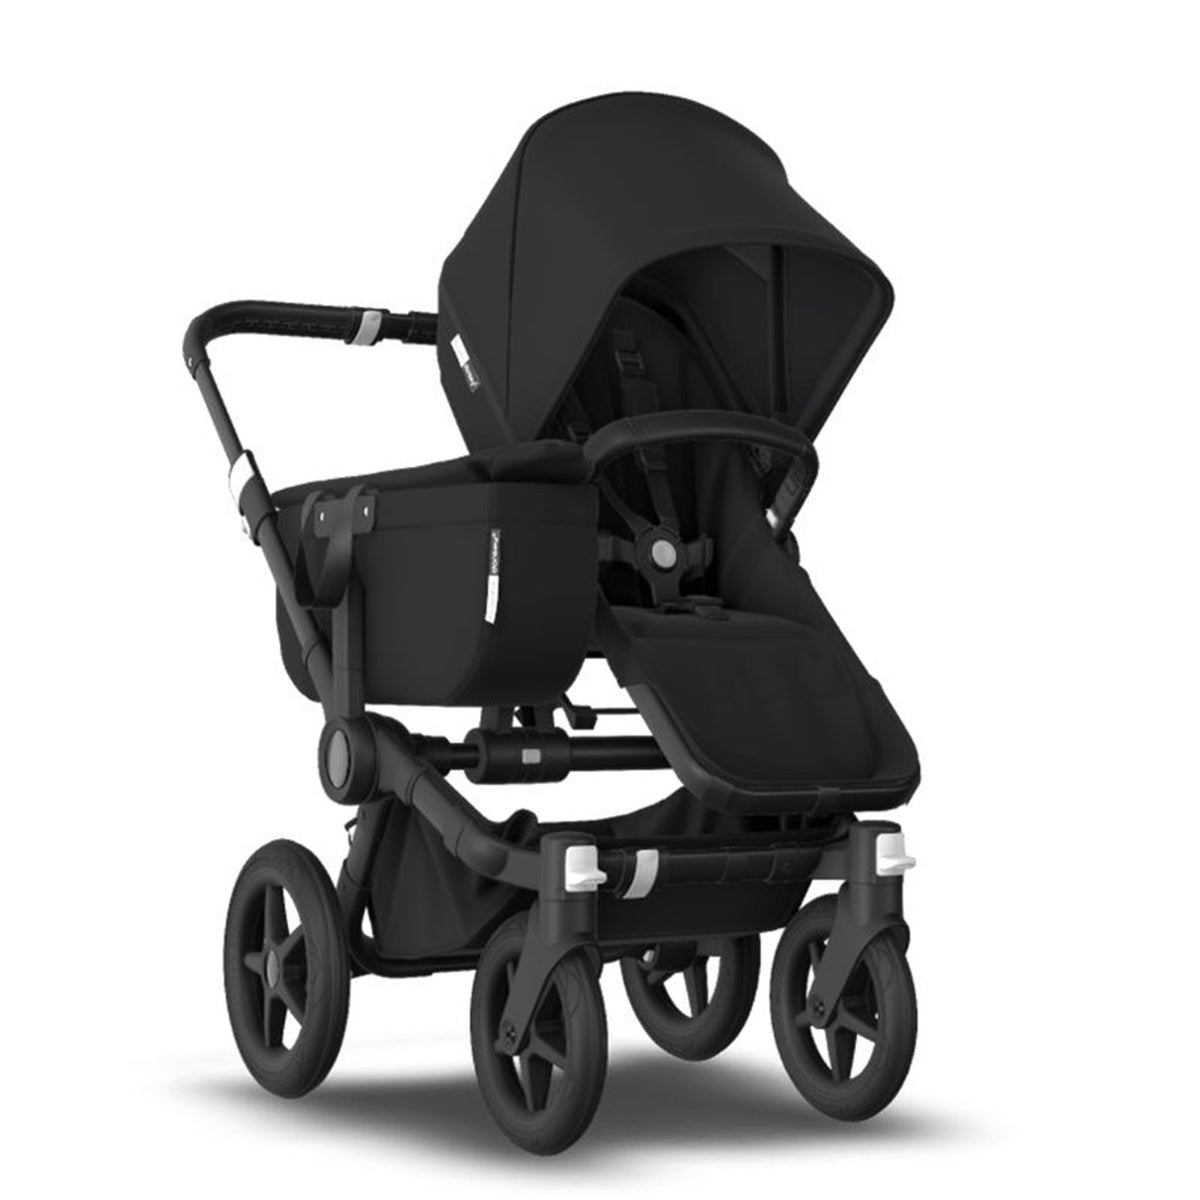 Bugaboo Donkey 3 Mono Seat and Bassinet Stroller- Black frame